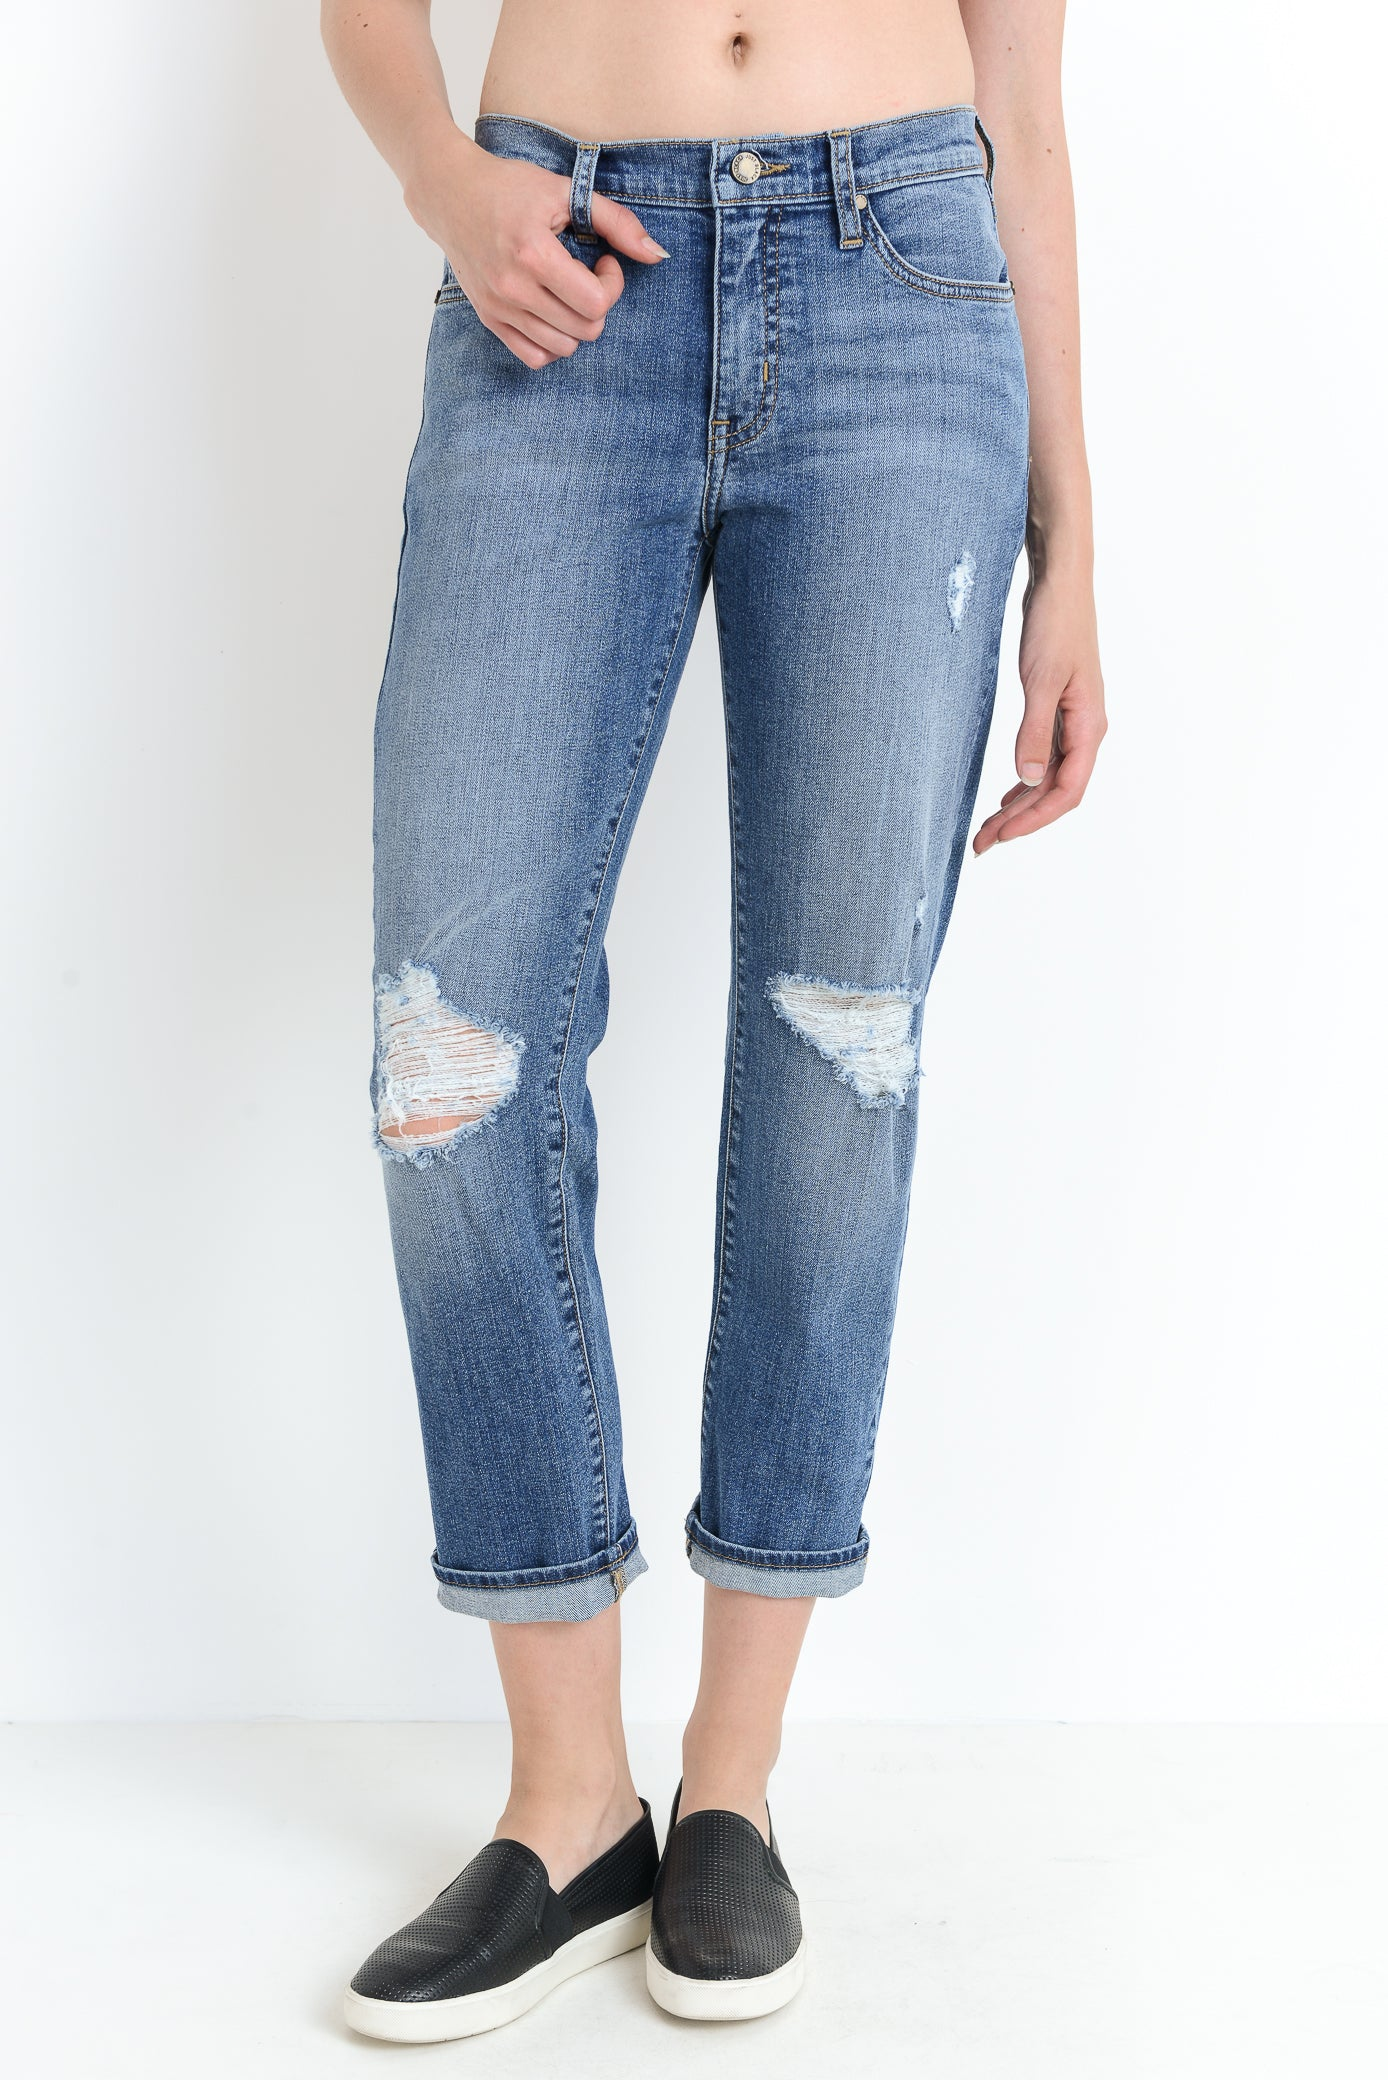 Distress Girlfriend Jeans - Nicoletaylorboutique